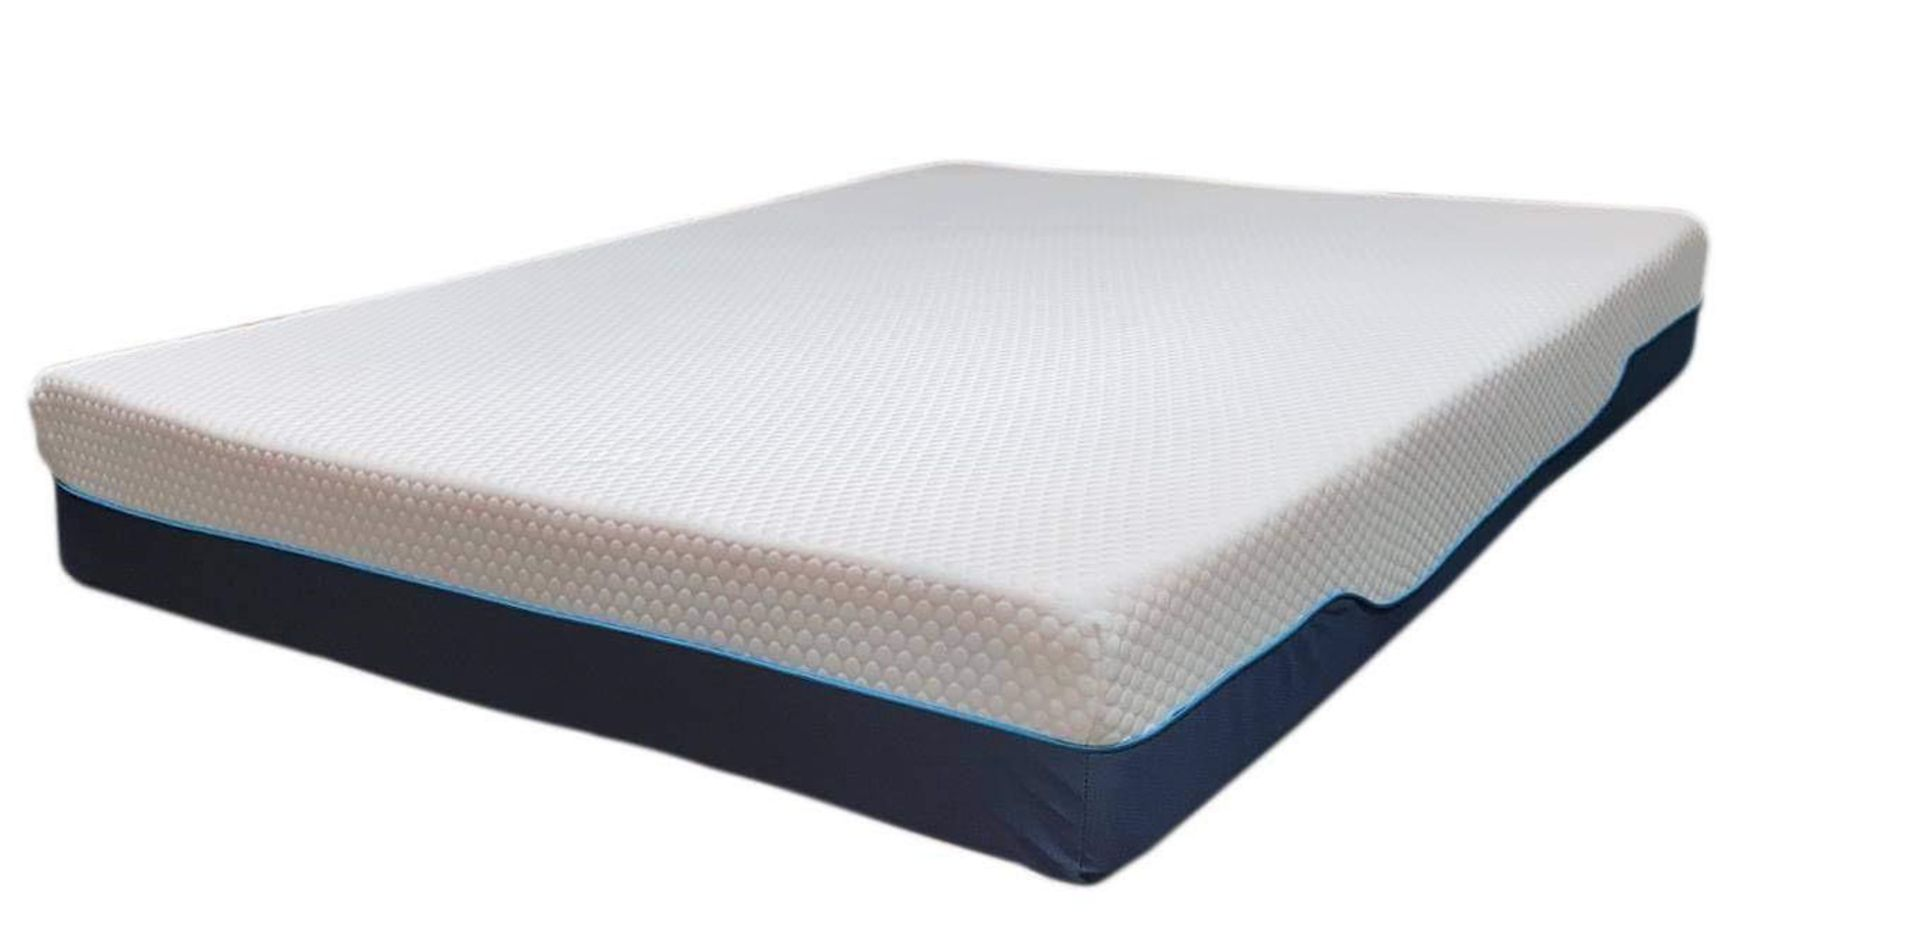 3ft 1000 Pocket Spring Memory Hybrid Mattress